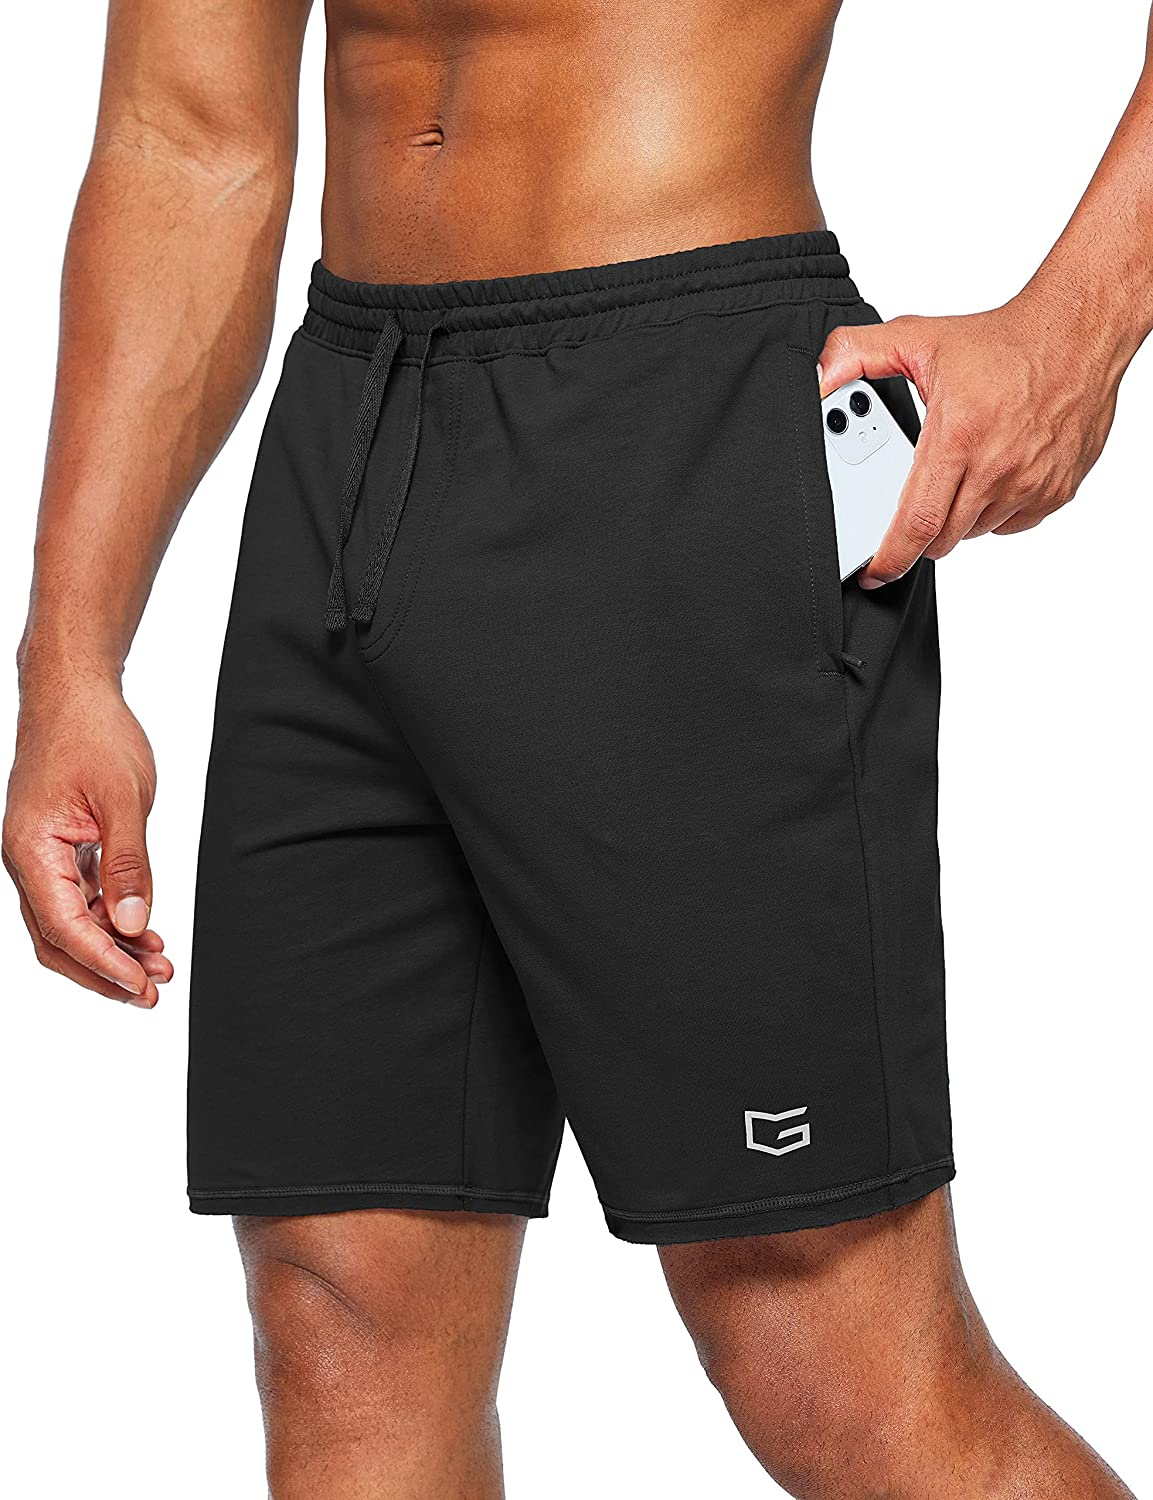 G Gradual Men's Cotton Sweat Shorts 8 Inch Casual Lounge Shorts Workout Athletic Gym Shorts for Men with Zipper Pockets at  Men's Clothing store